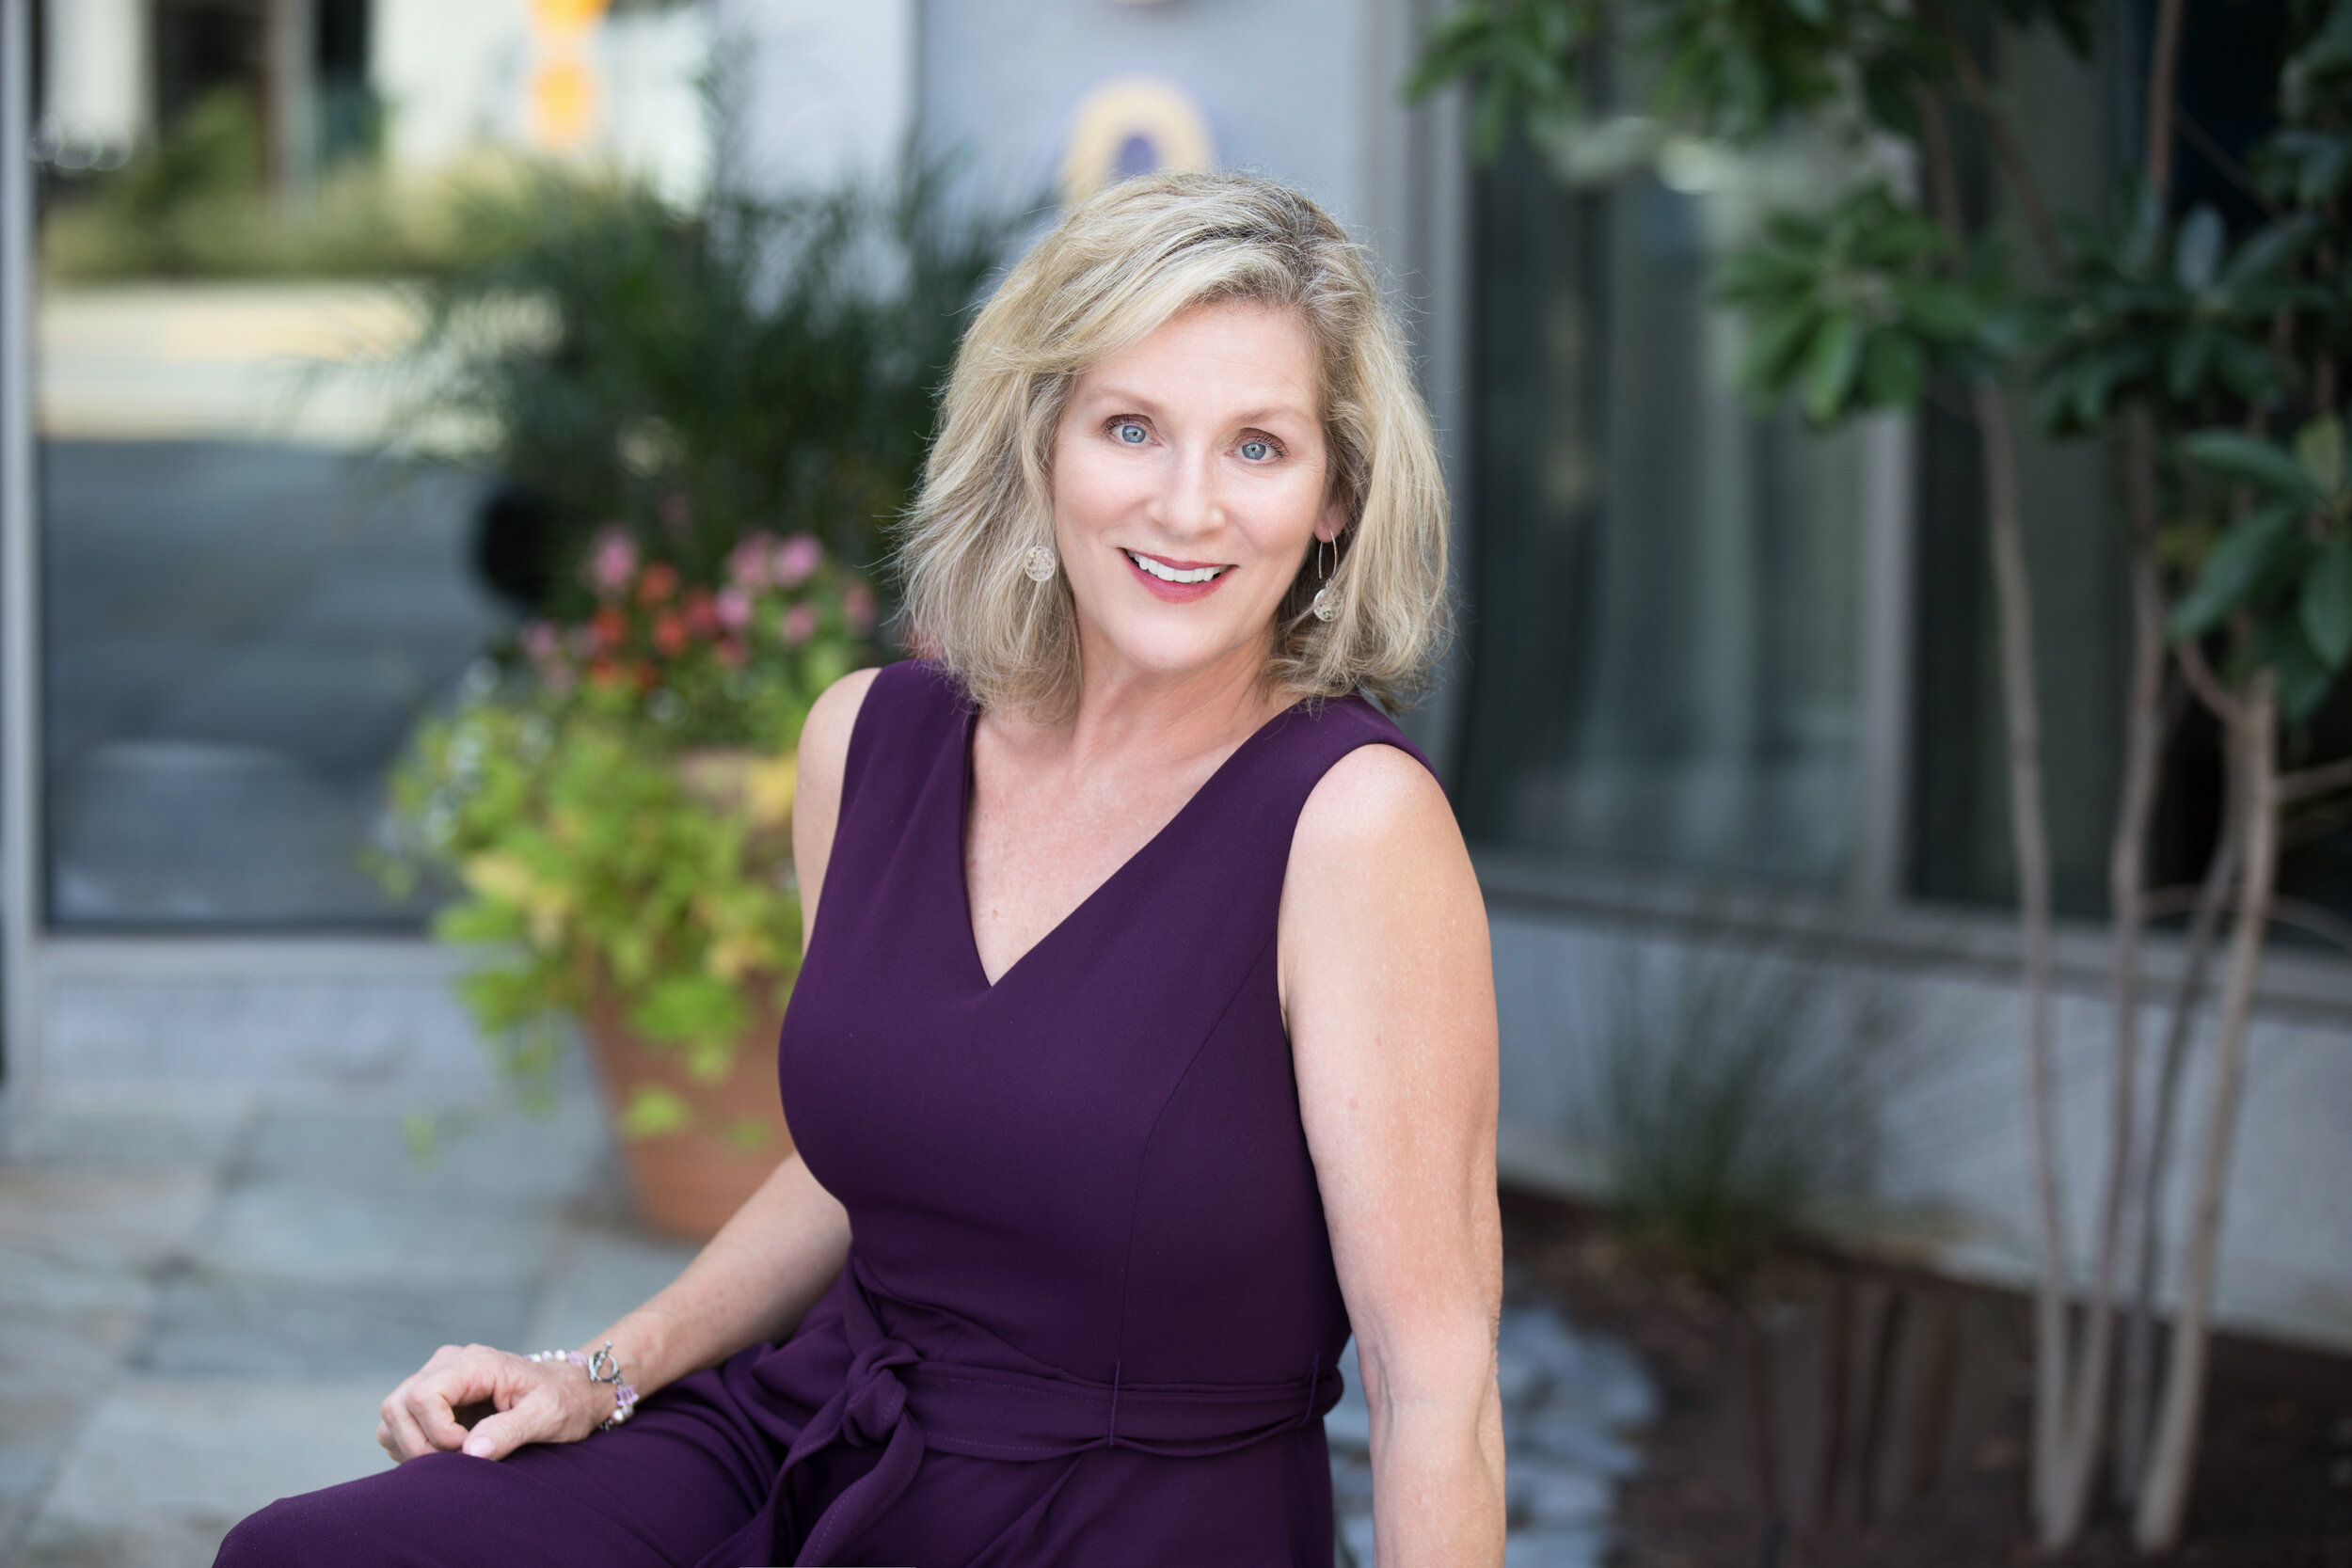 Victoria Henderson is a Vice President, Associate Broker and a true exclusive buyers agent. She is one of the most trusted and experienced Realtors in the DC metro area.